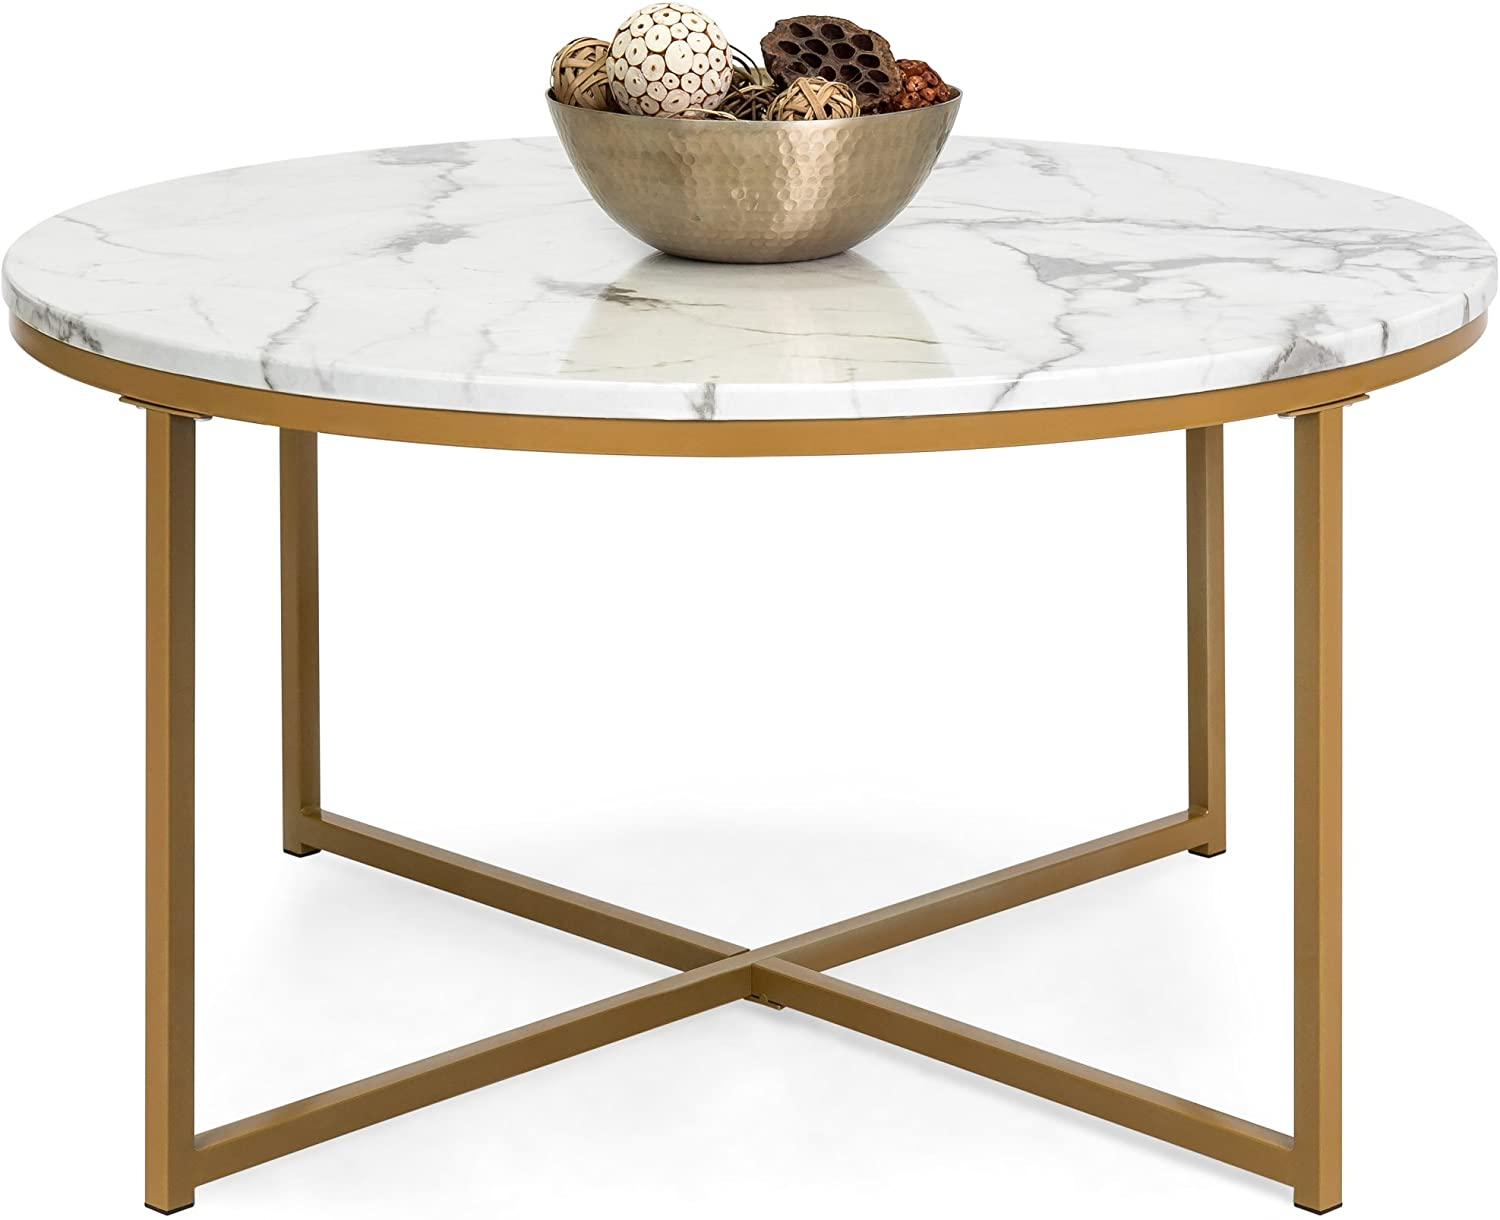 Butler Specialty Artists' Originals Demilune Console Table